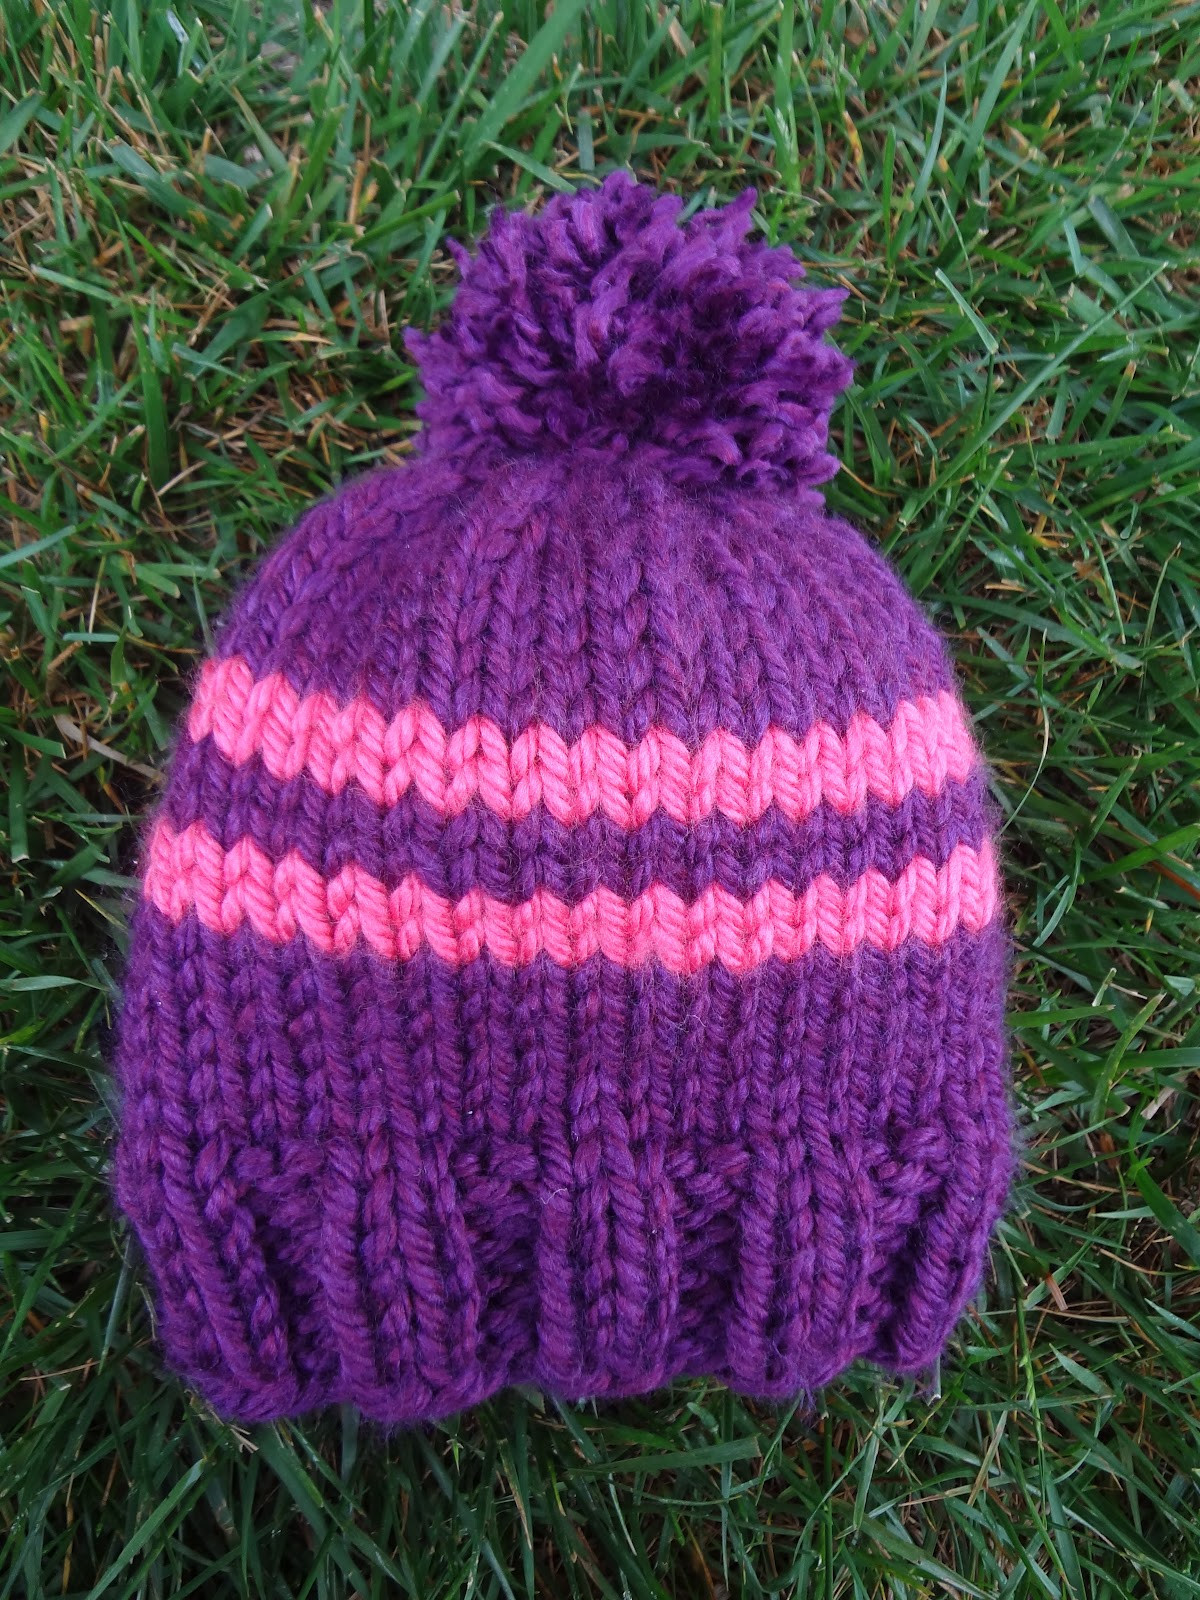 Hat Patterns Awesome Fiber Flux Free Knitting Pattern Preschooler Rugby Hat Of Luxury 49 Pictures Hat Patterns